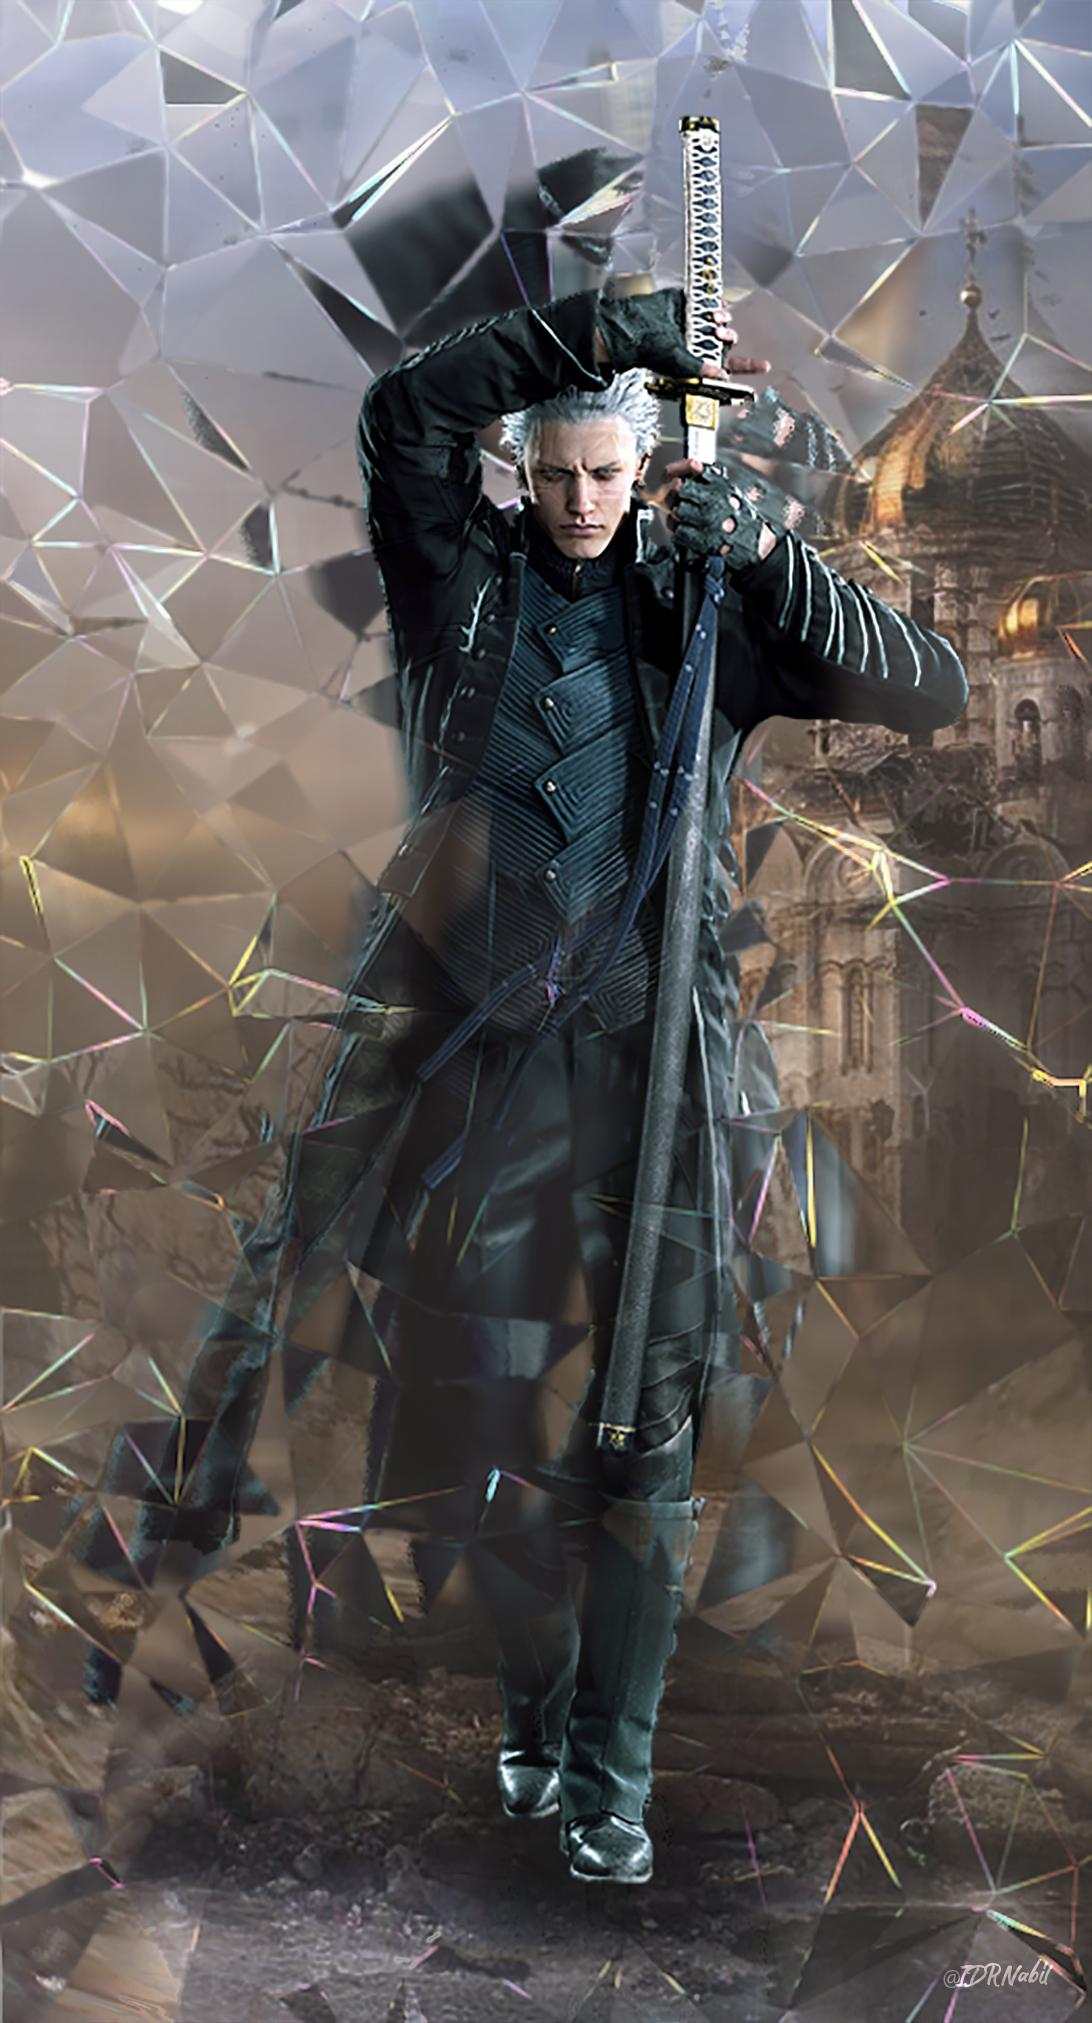 Devil May Cry 5 iPhone Wallpapers - Wallpaper Cave